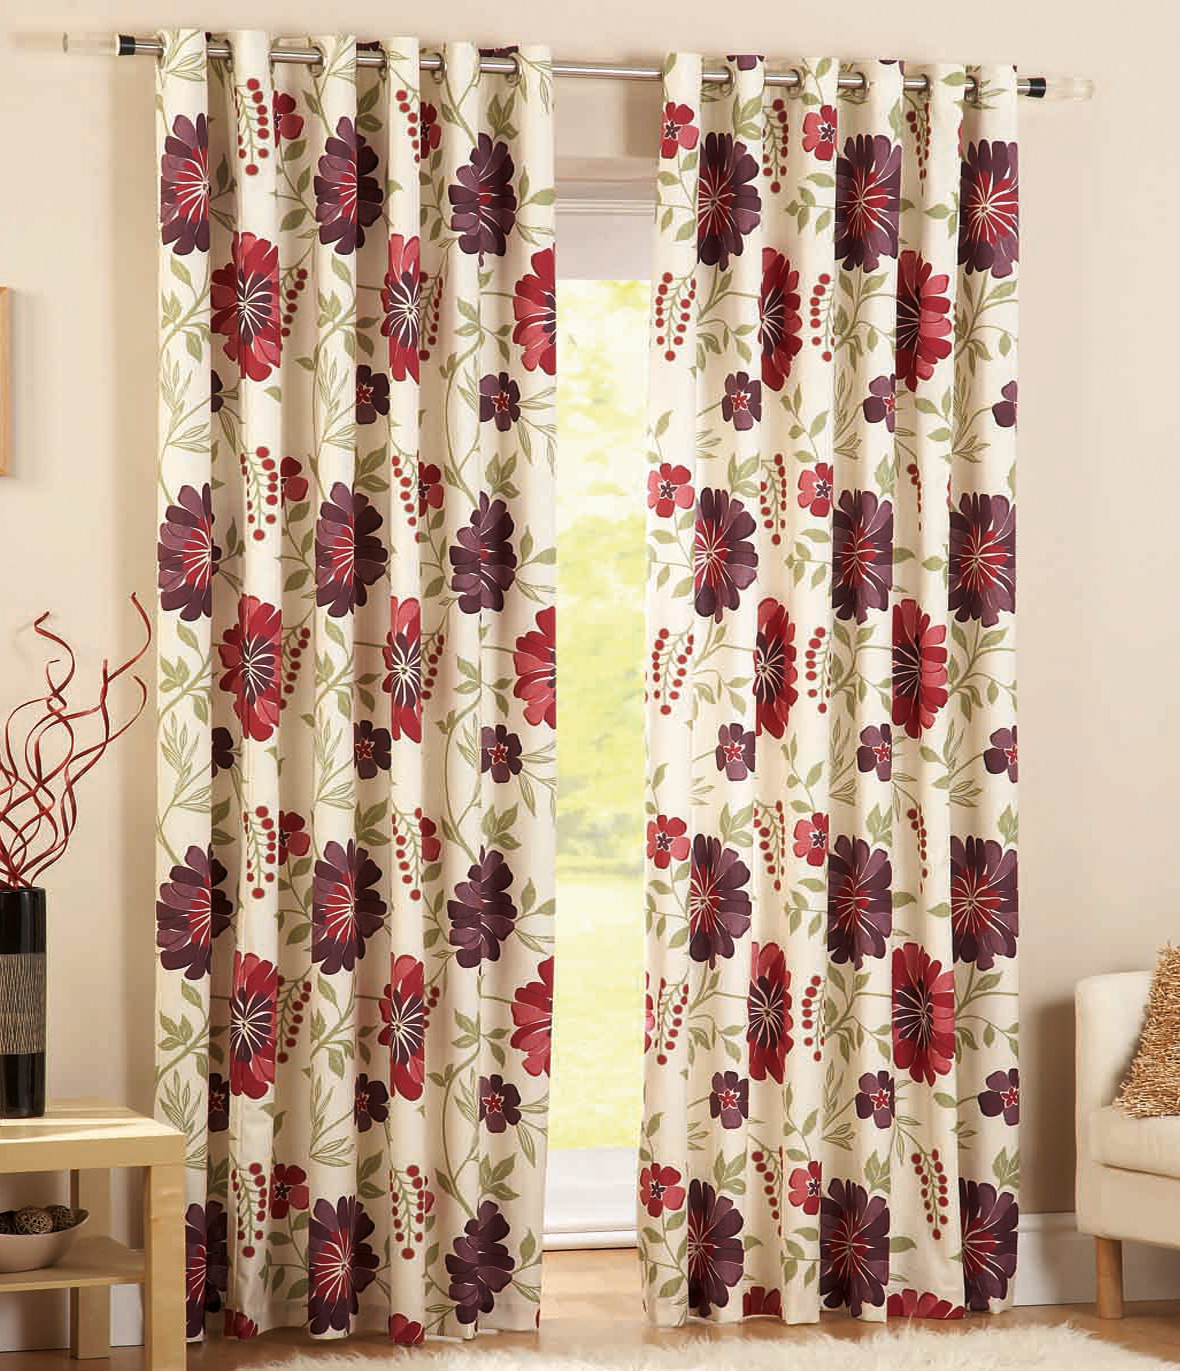 Cotton Canvas Black Eyelet Lined Curtain: HEAVY CANVAS Poly Cotton Eyelet Curtains